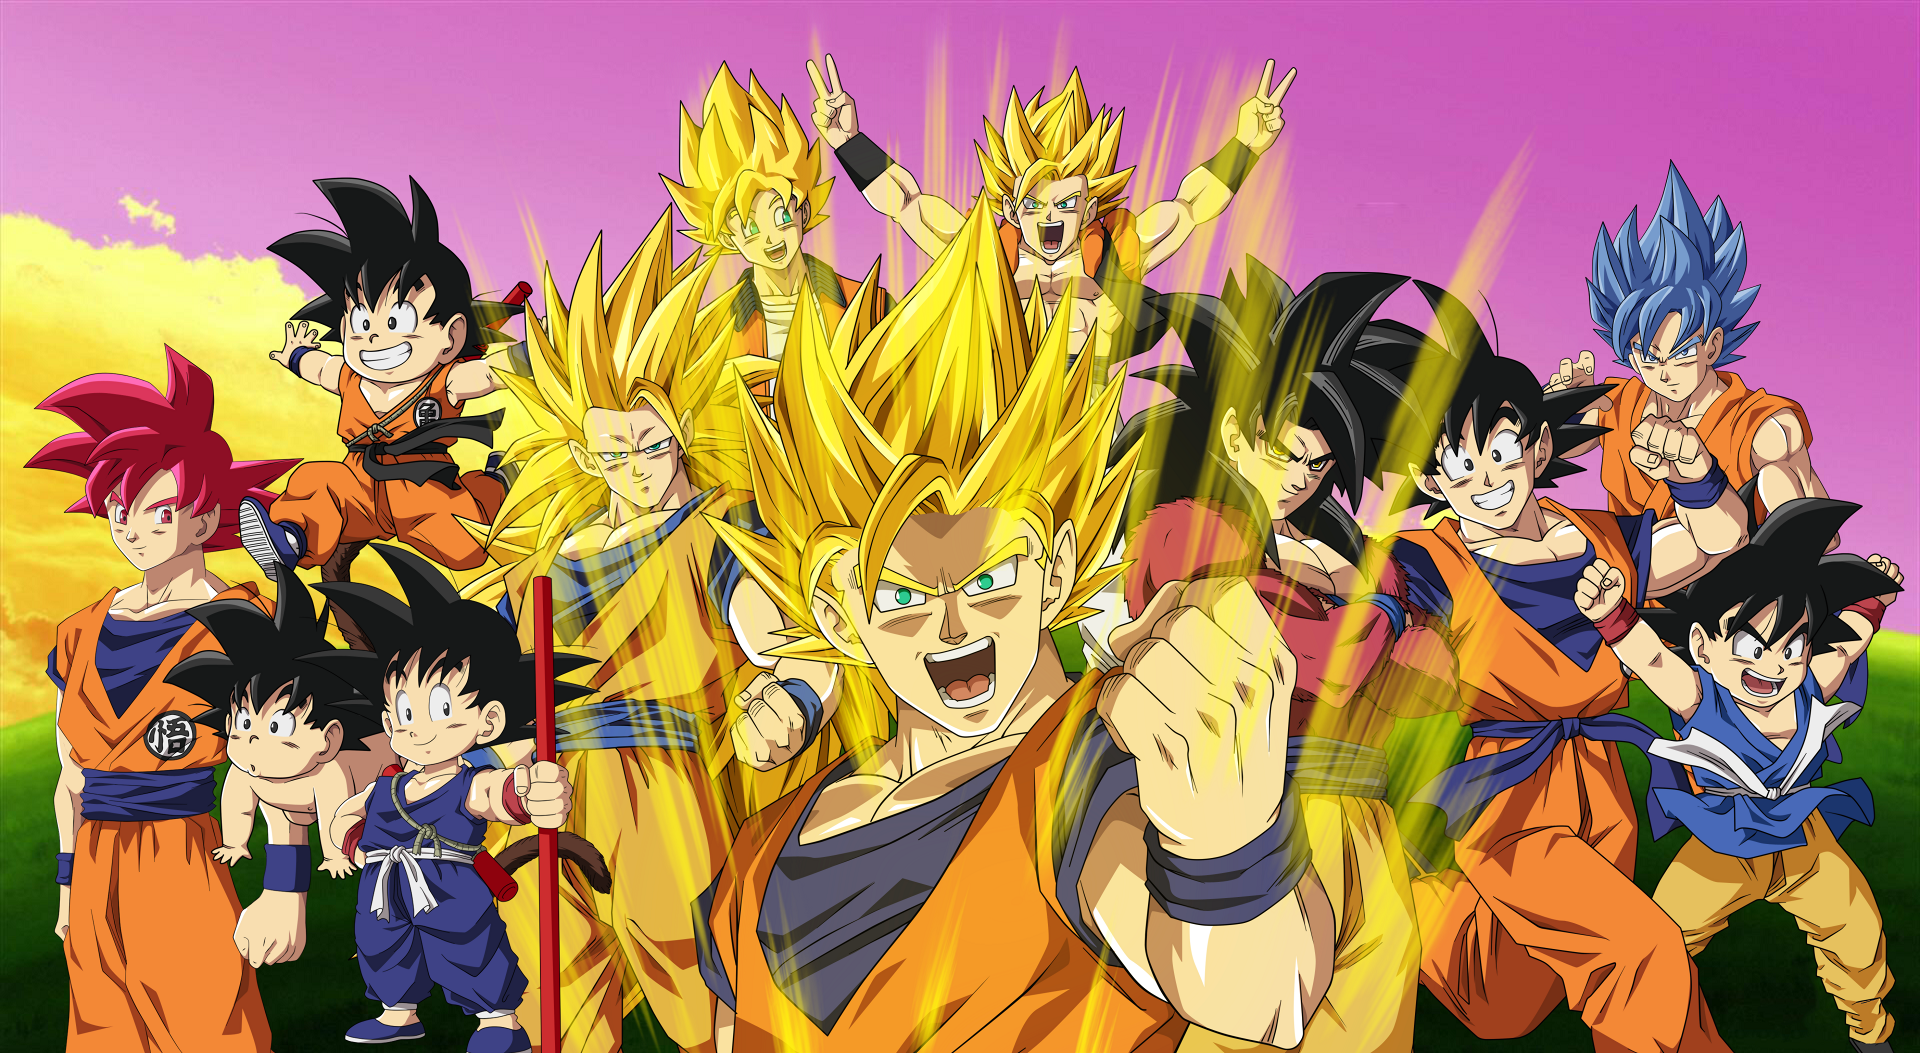 Fondos de dragon ball super wallpapers dragon ball z super gratis - Photo dragon ball z ...